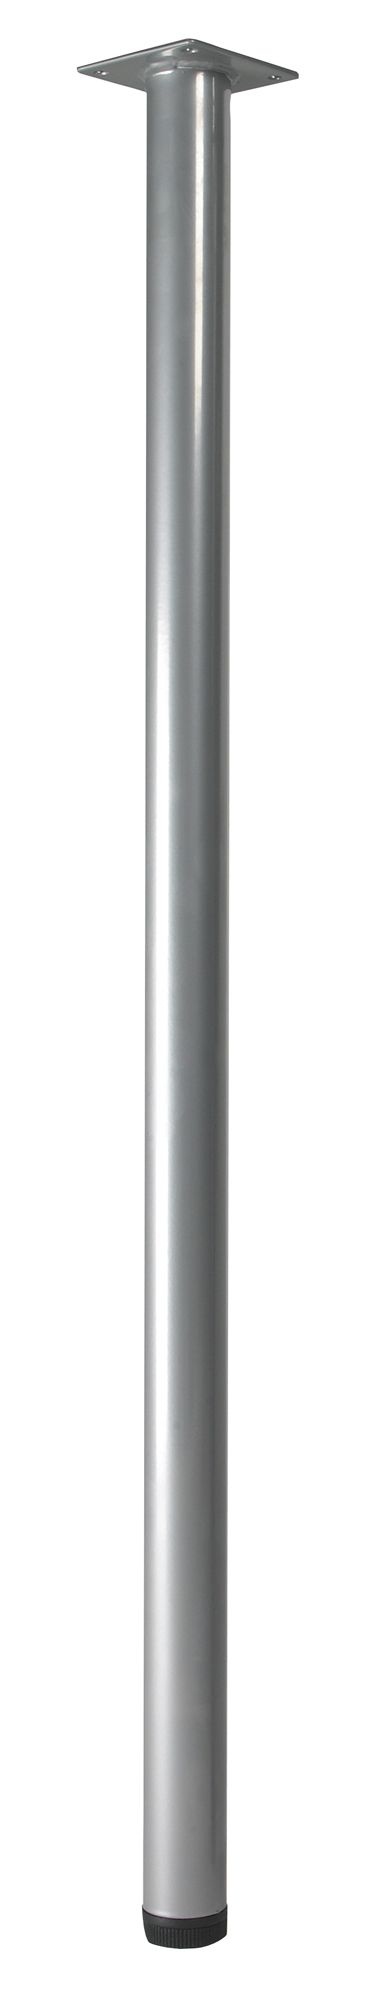 Furniture Legs B Q rothley (h)700mm painted silver painted furniture leg | silver